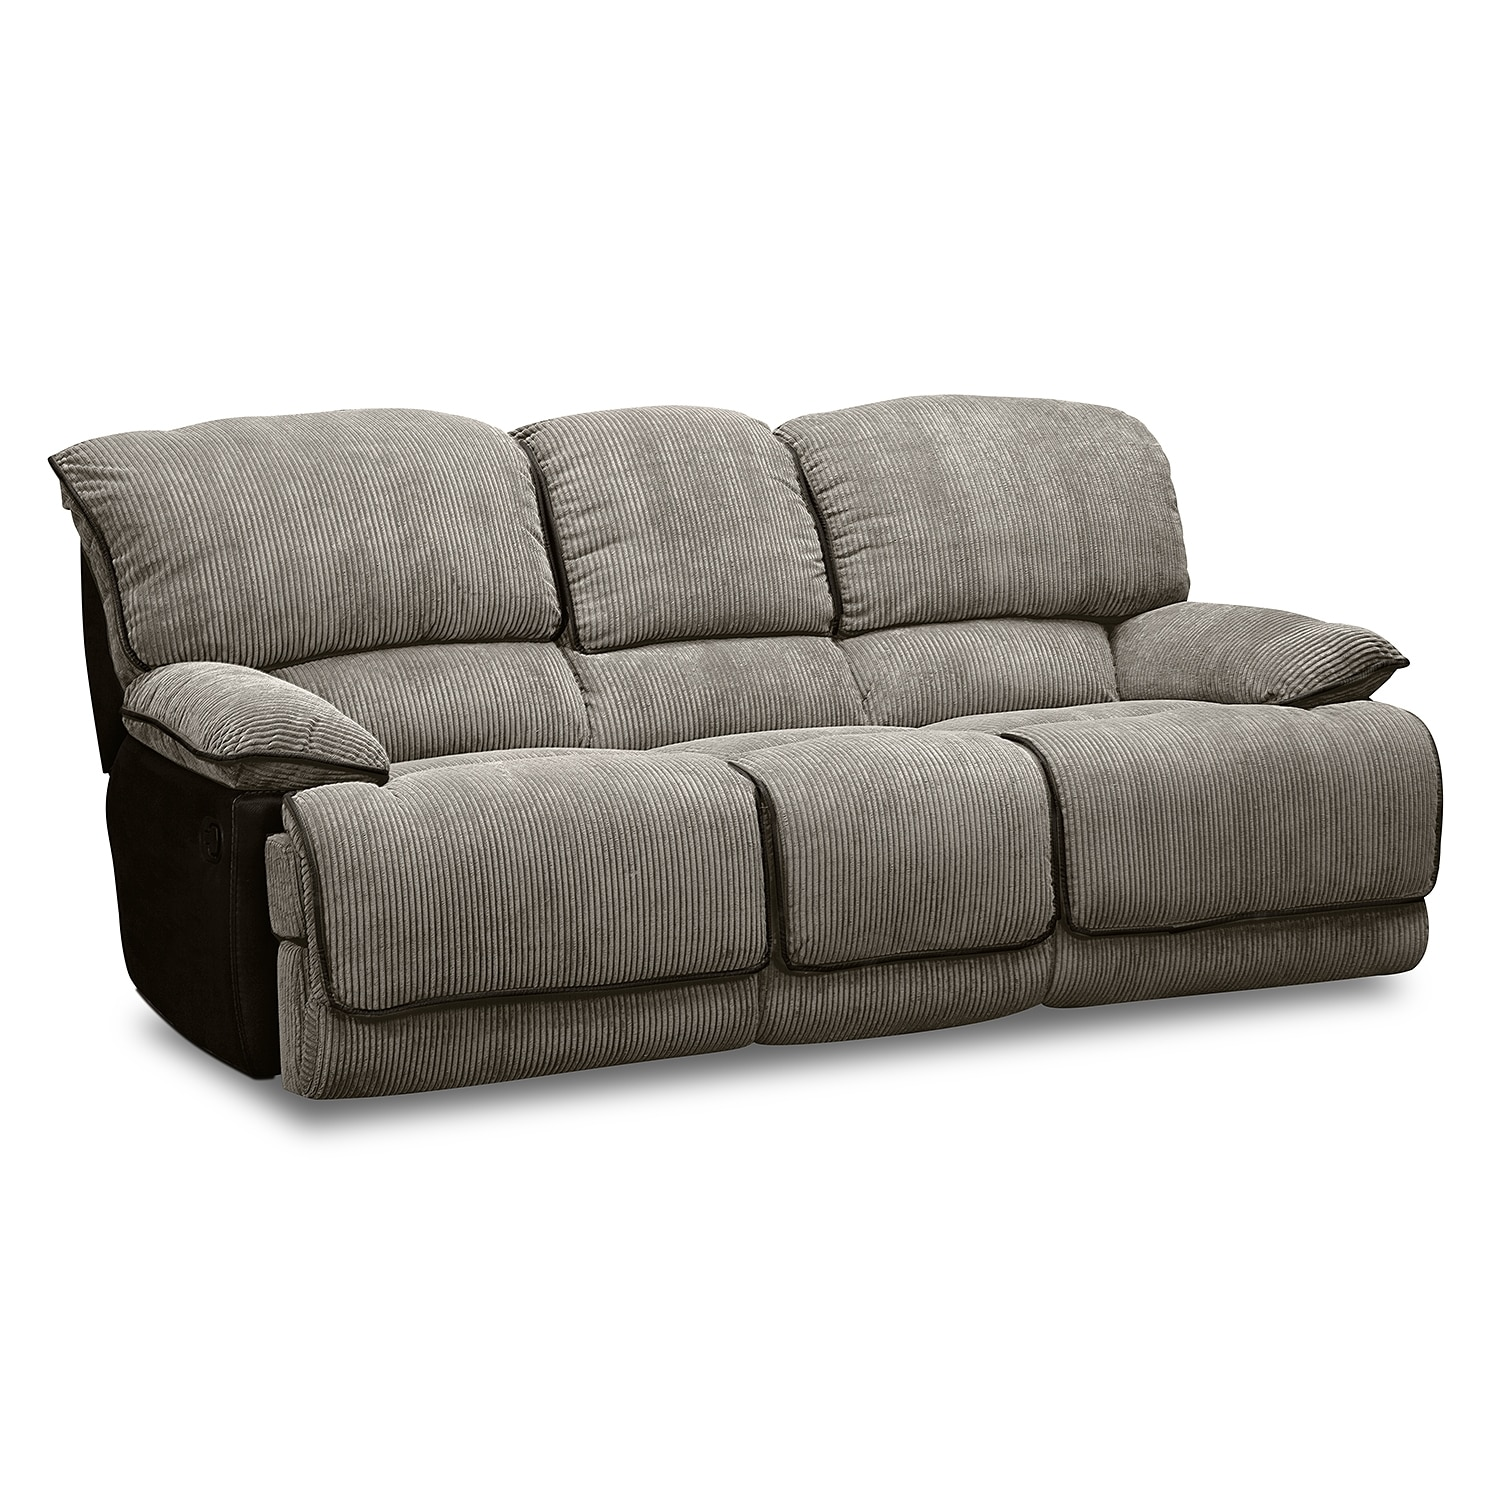 Laguna Reclining Sofa, Gliding Reclining Loveseat and Glider Recliner Set - Steel : Value City ...